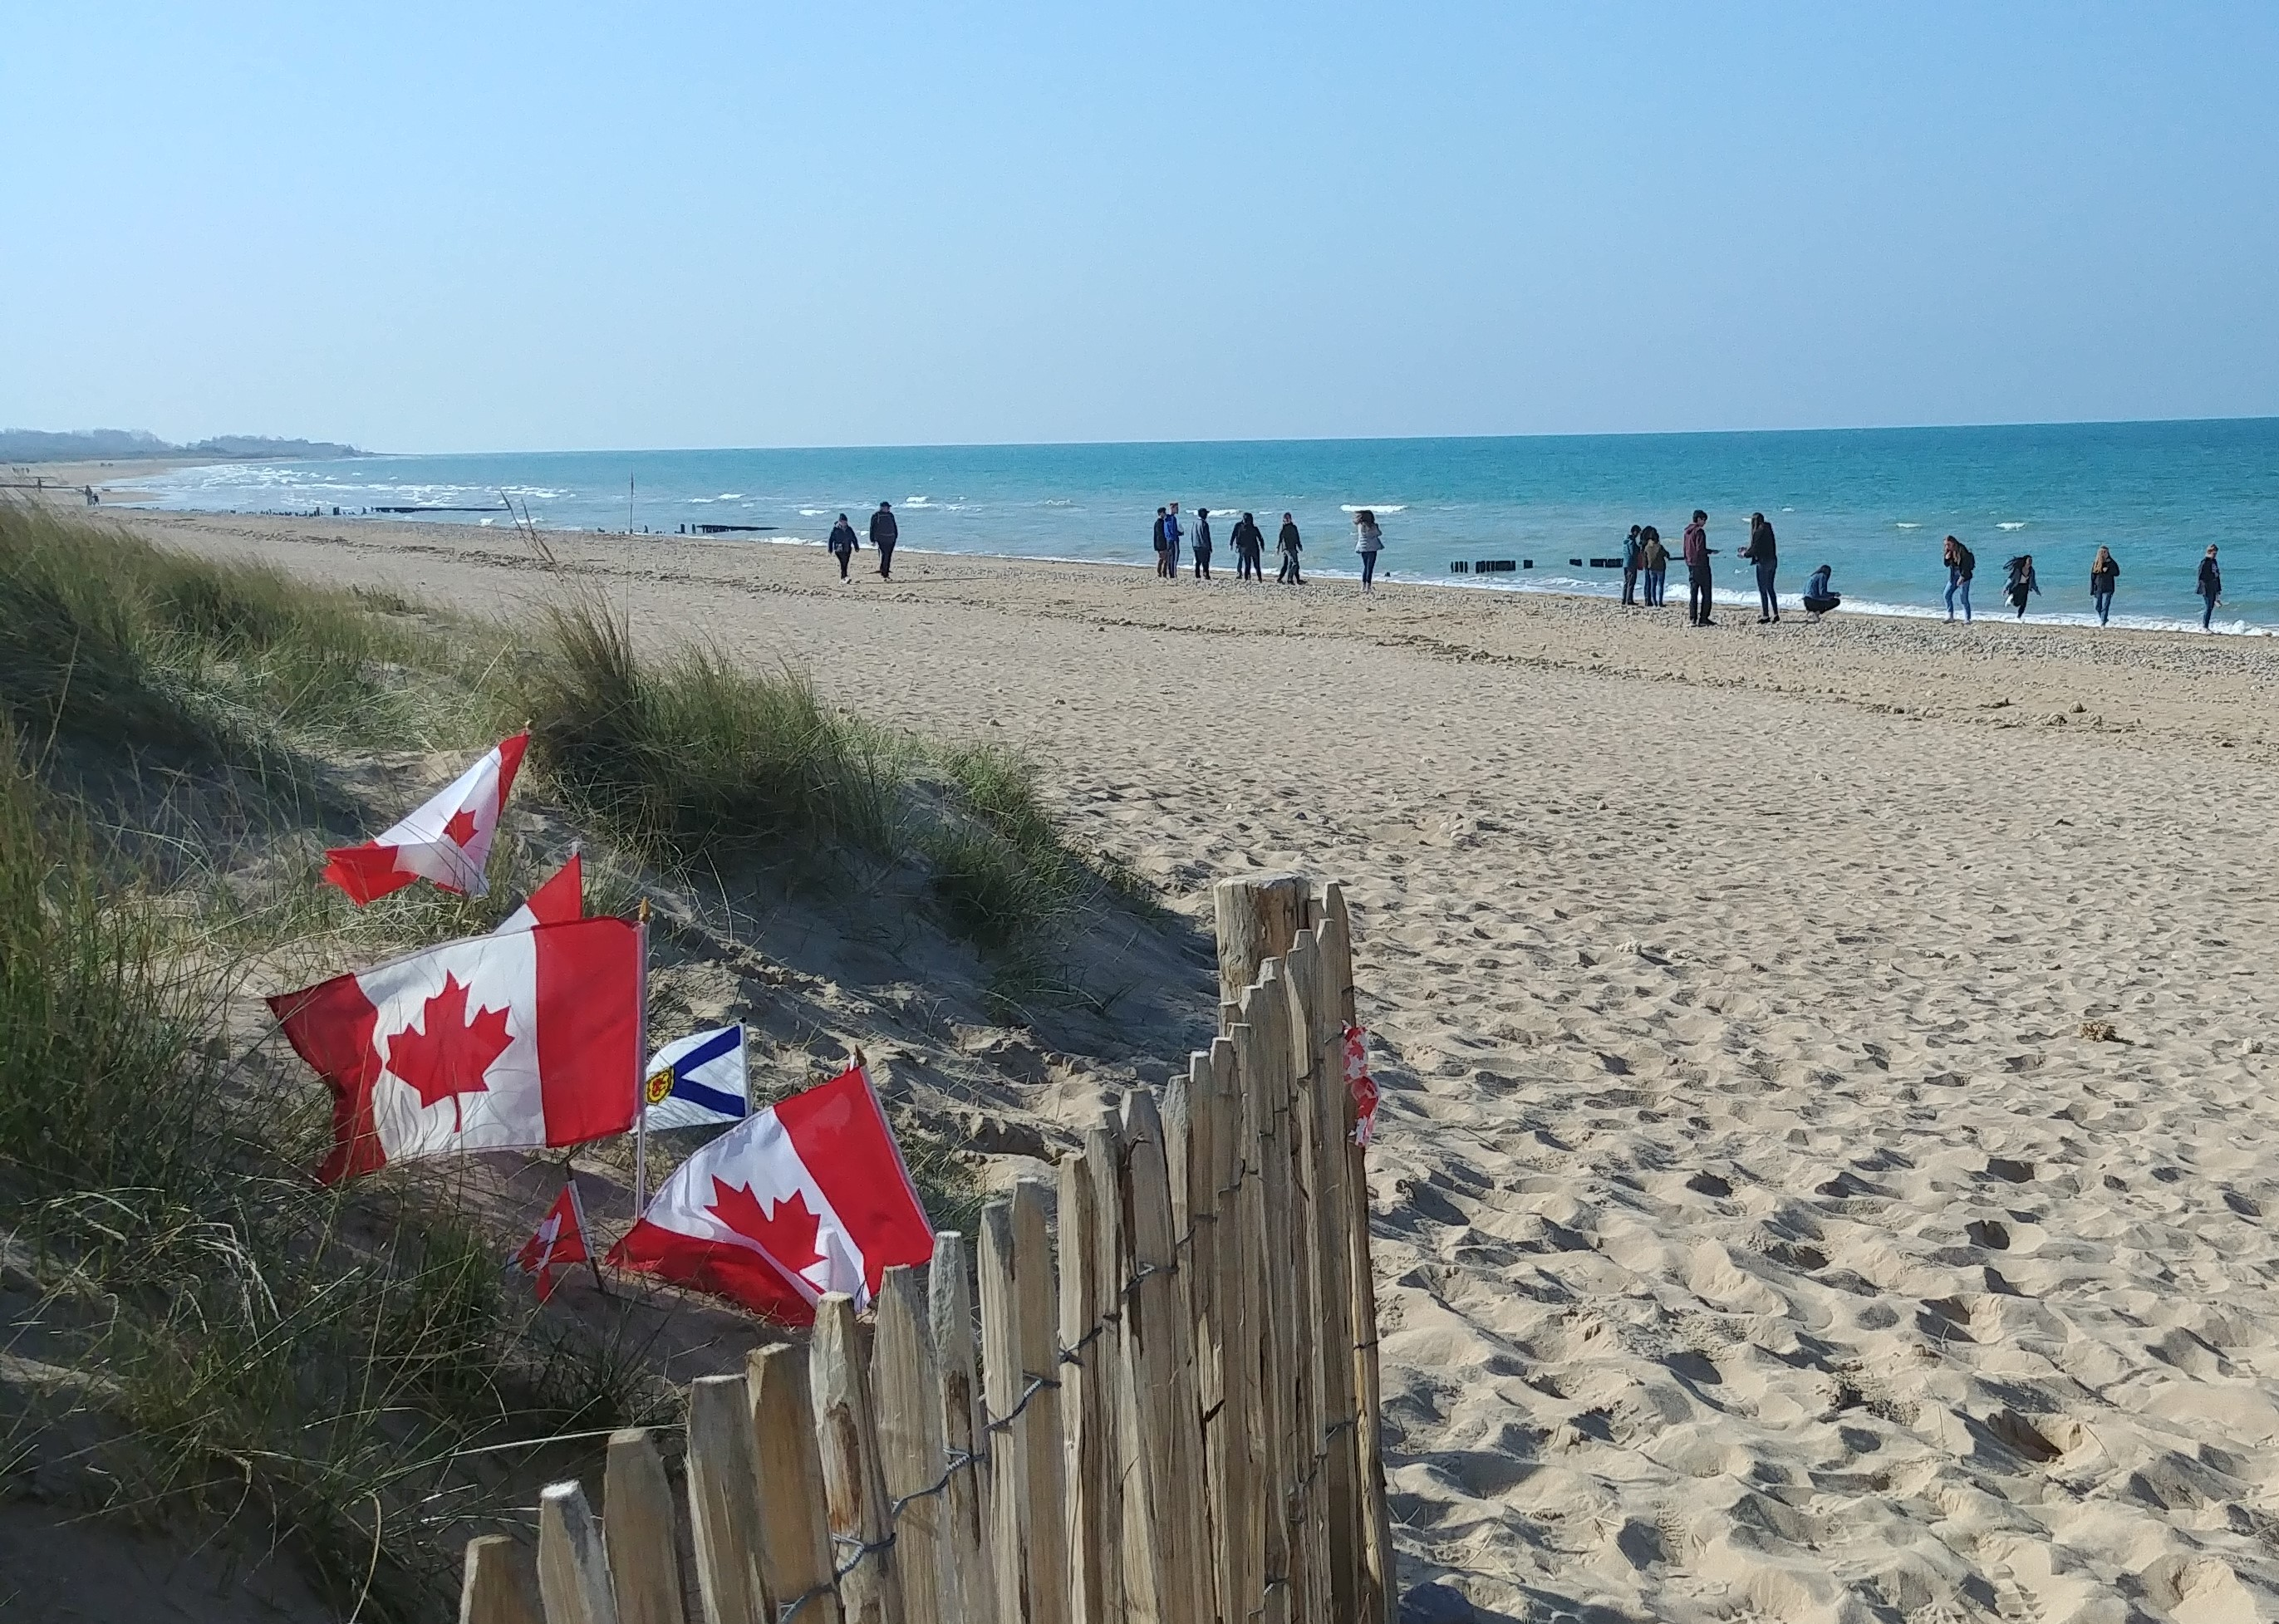 JSED_Europe_France_Normandy_Juno Beach